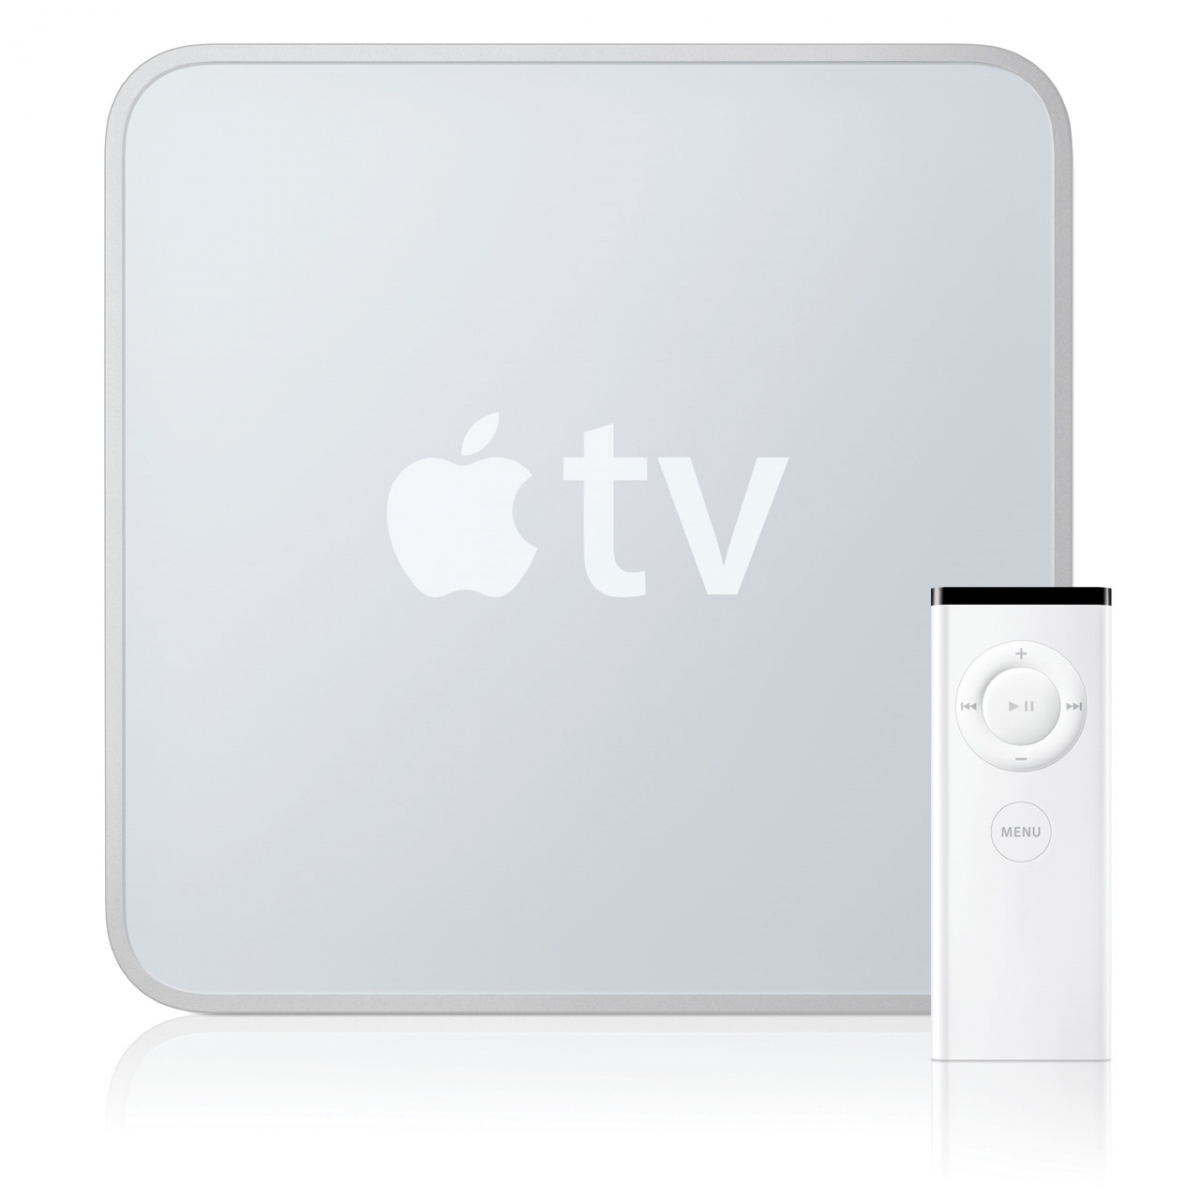 First Generation Apple TV Users Report Connectivity Issues with iTunes